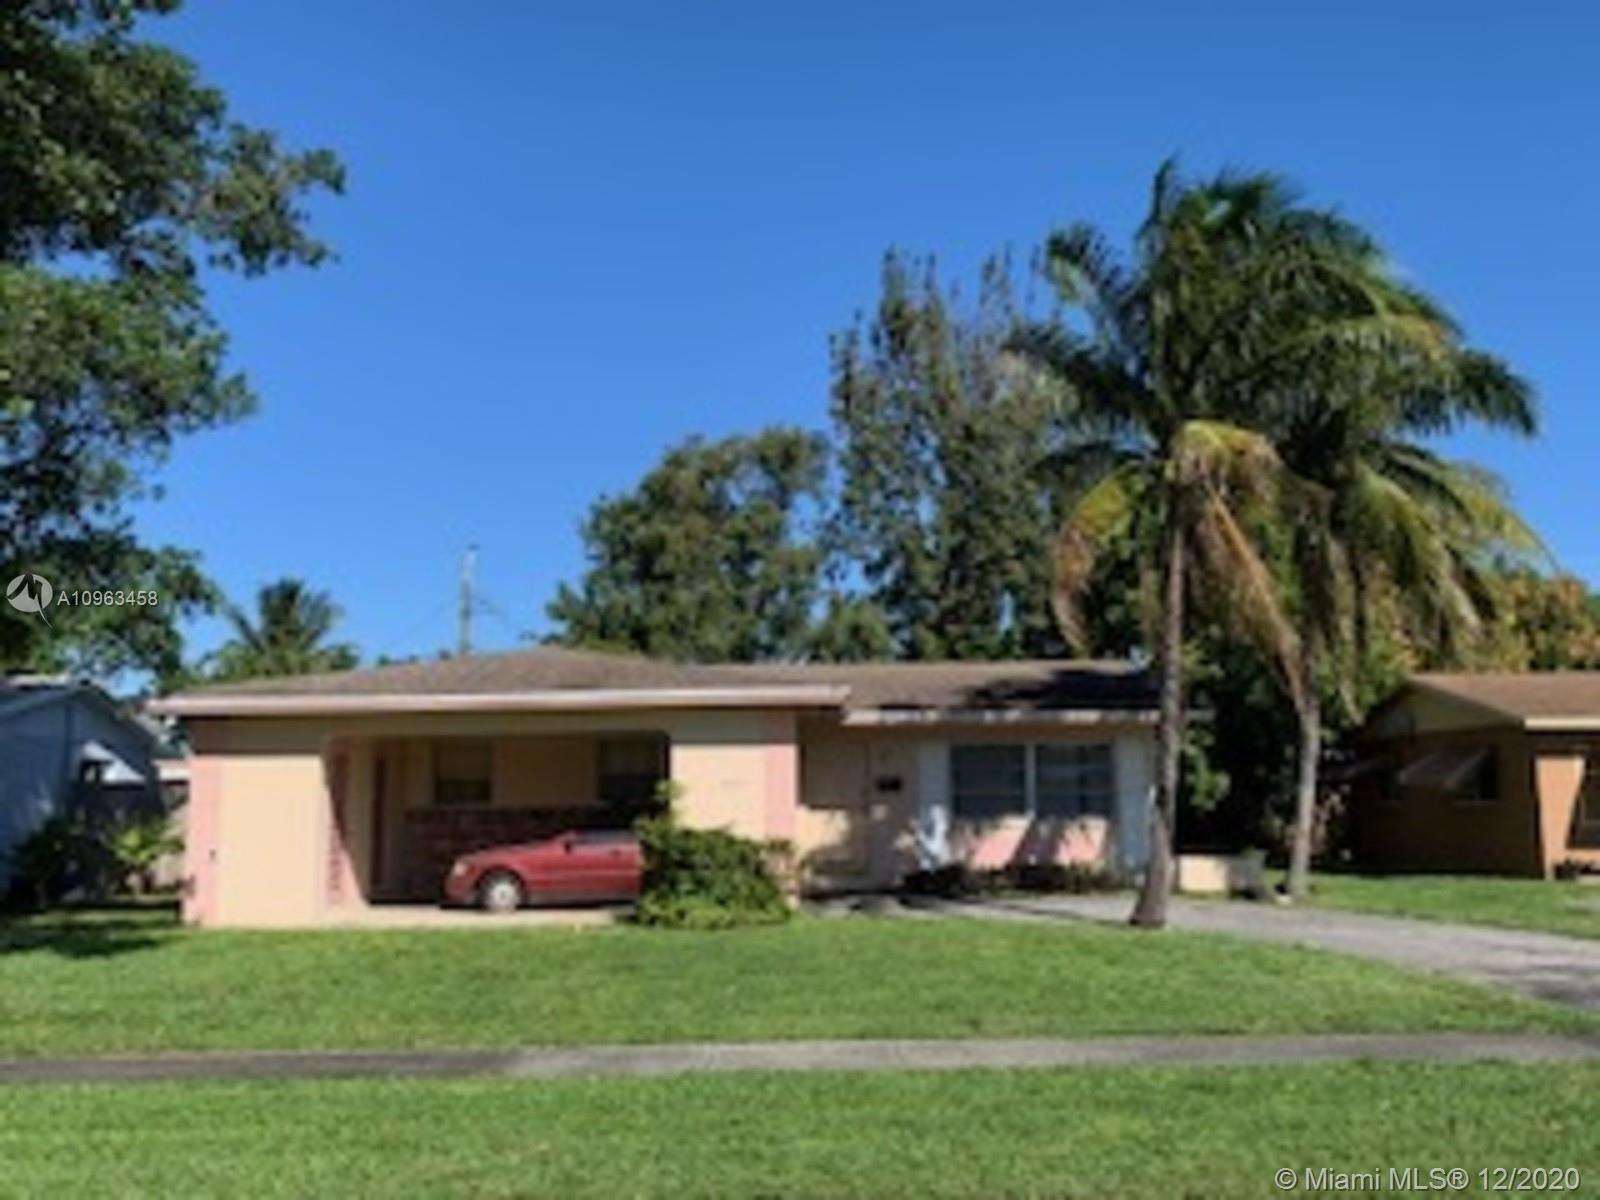 Listing Details for 4371 32nd Ct, Lauderdale Lakes, FL 33319